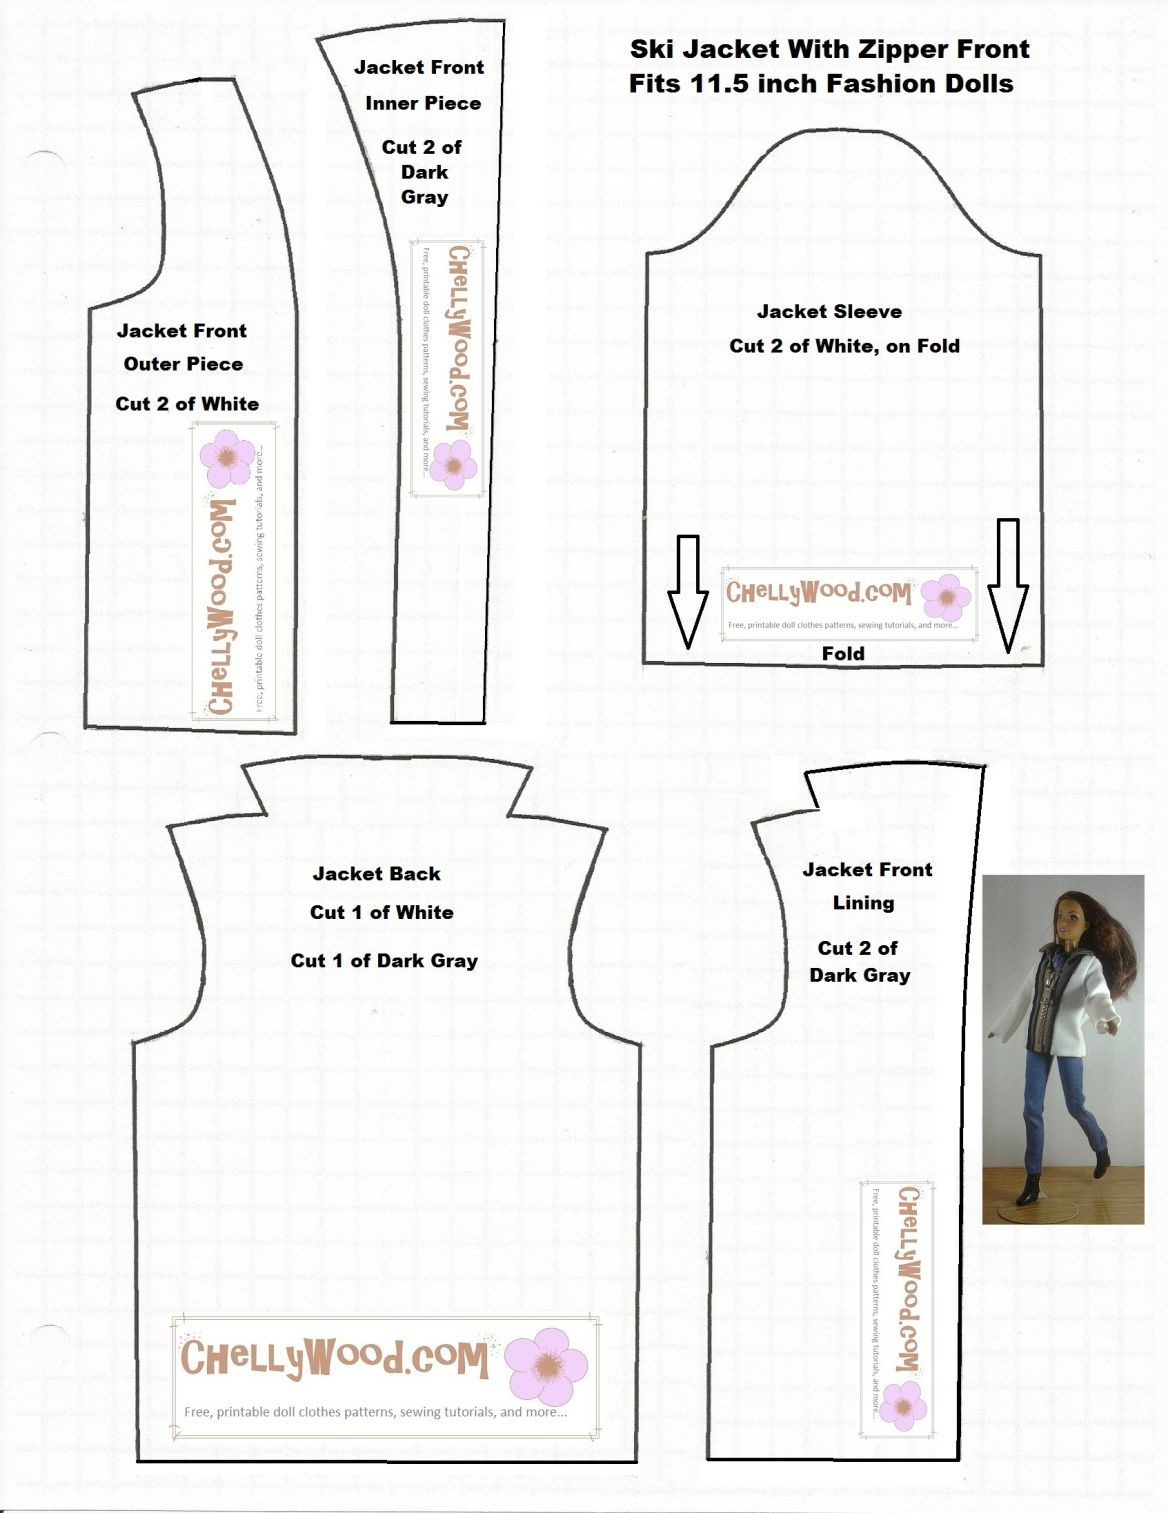 Image Of Printable Sewing Pattern For A Ski Coat Or Winter Jacket To - Free Printable Barbie Doll Sewing Patterns Template